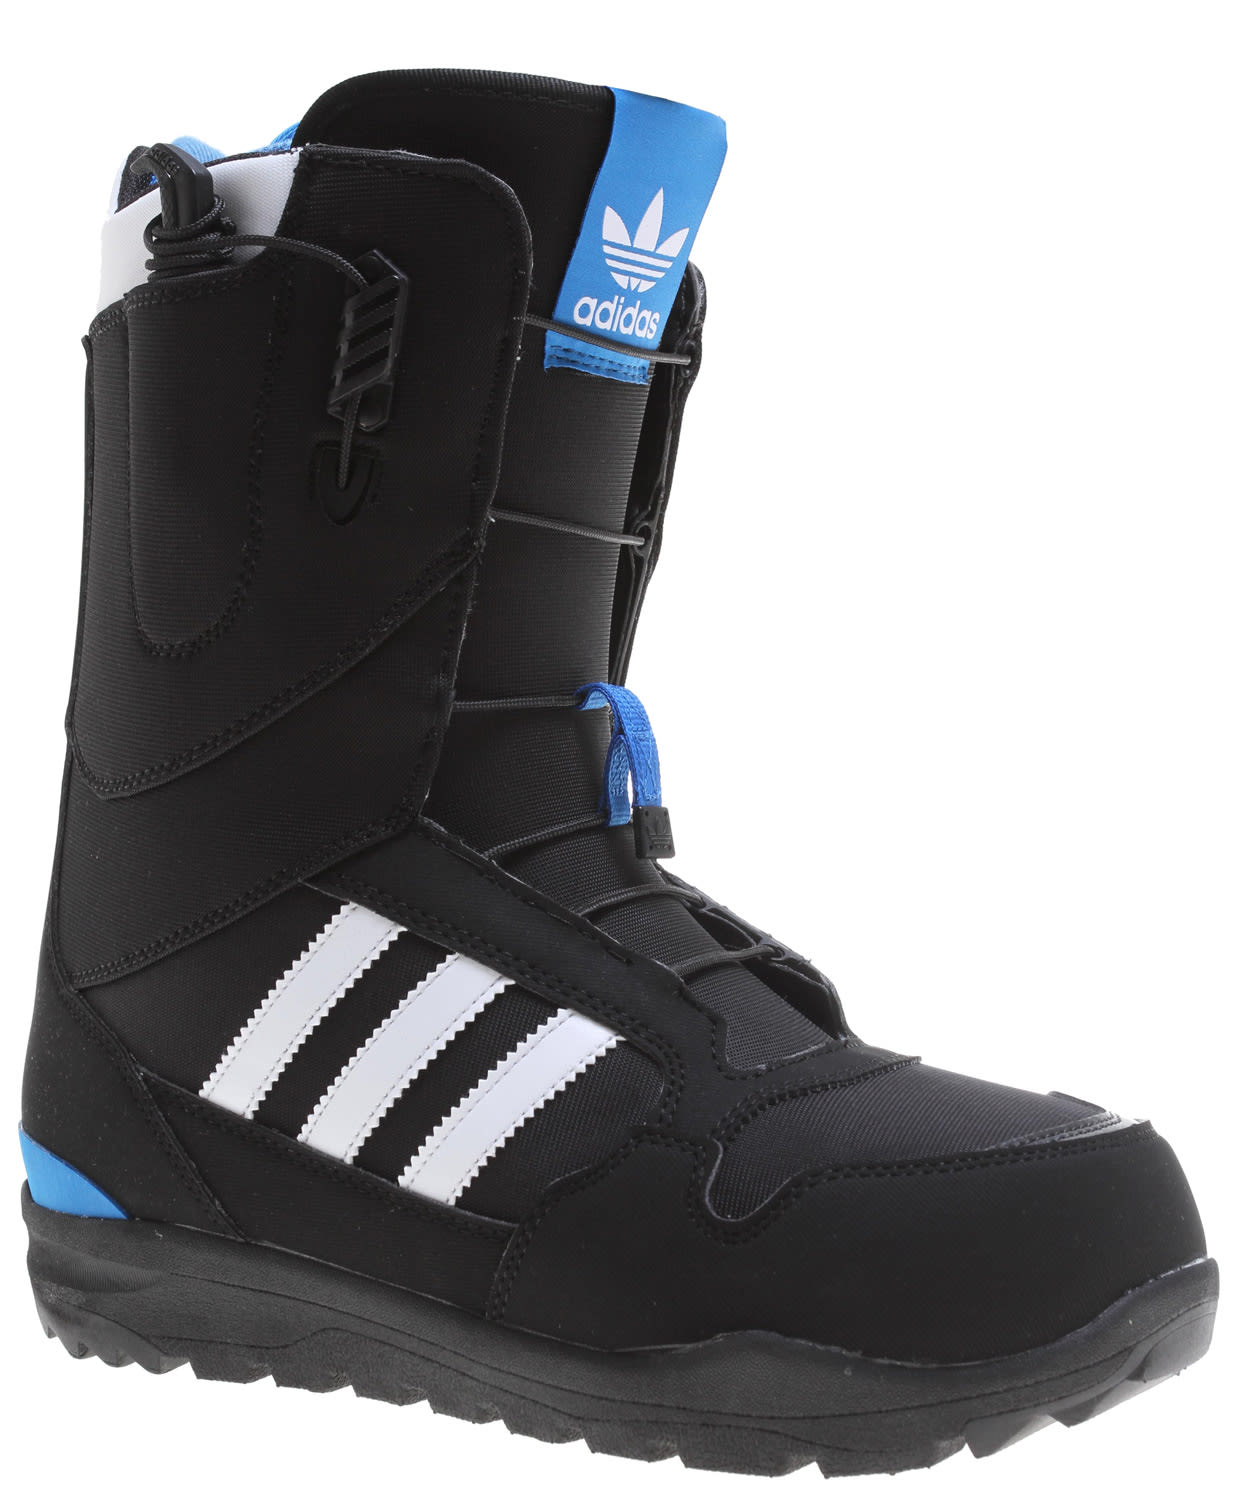 On Sale Adidas Zx Snowboard Boots Up To 50 Off